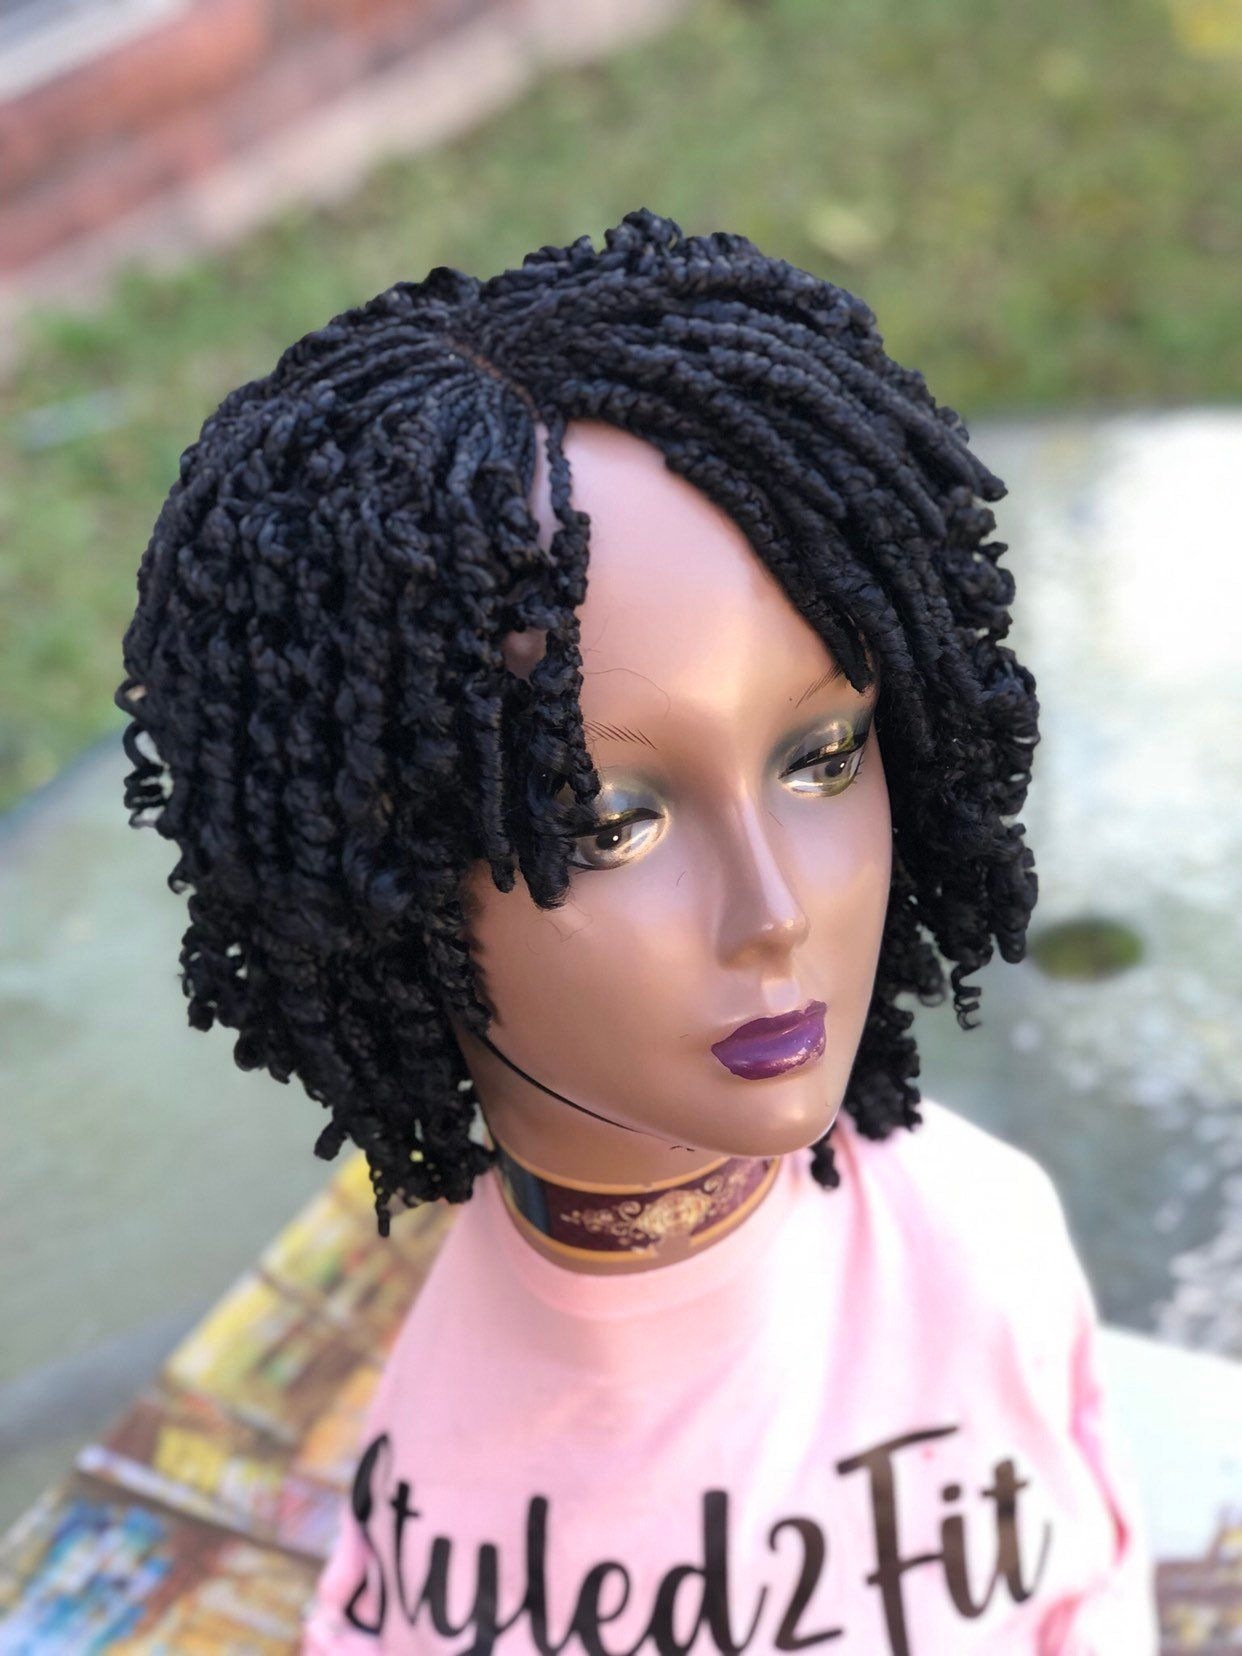 Braided wigshort spiral wigmade to order delivered to